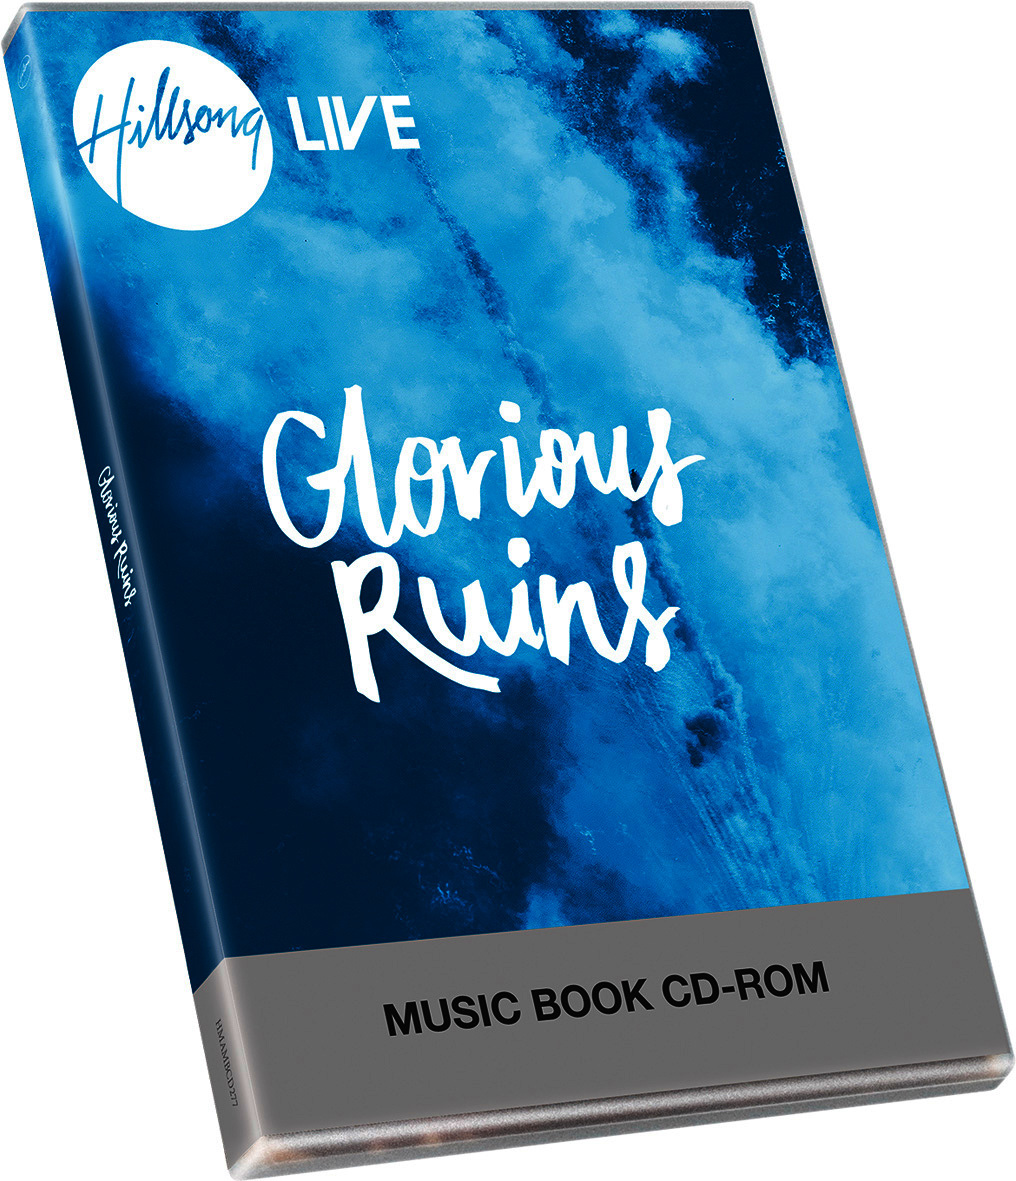 Glorious Ruins - Digital Songbook (CD-ROM)